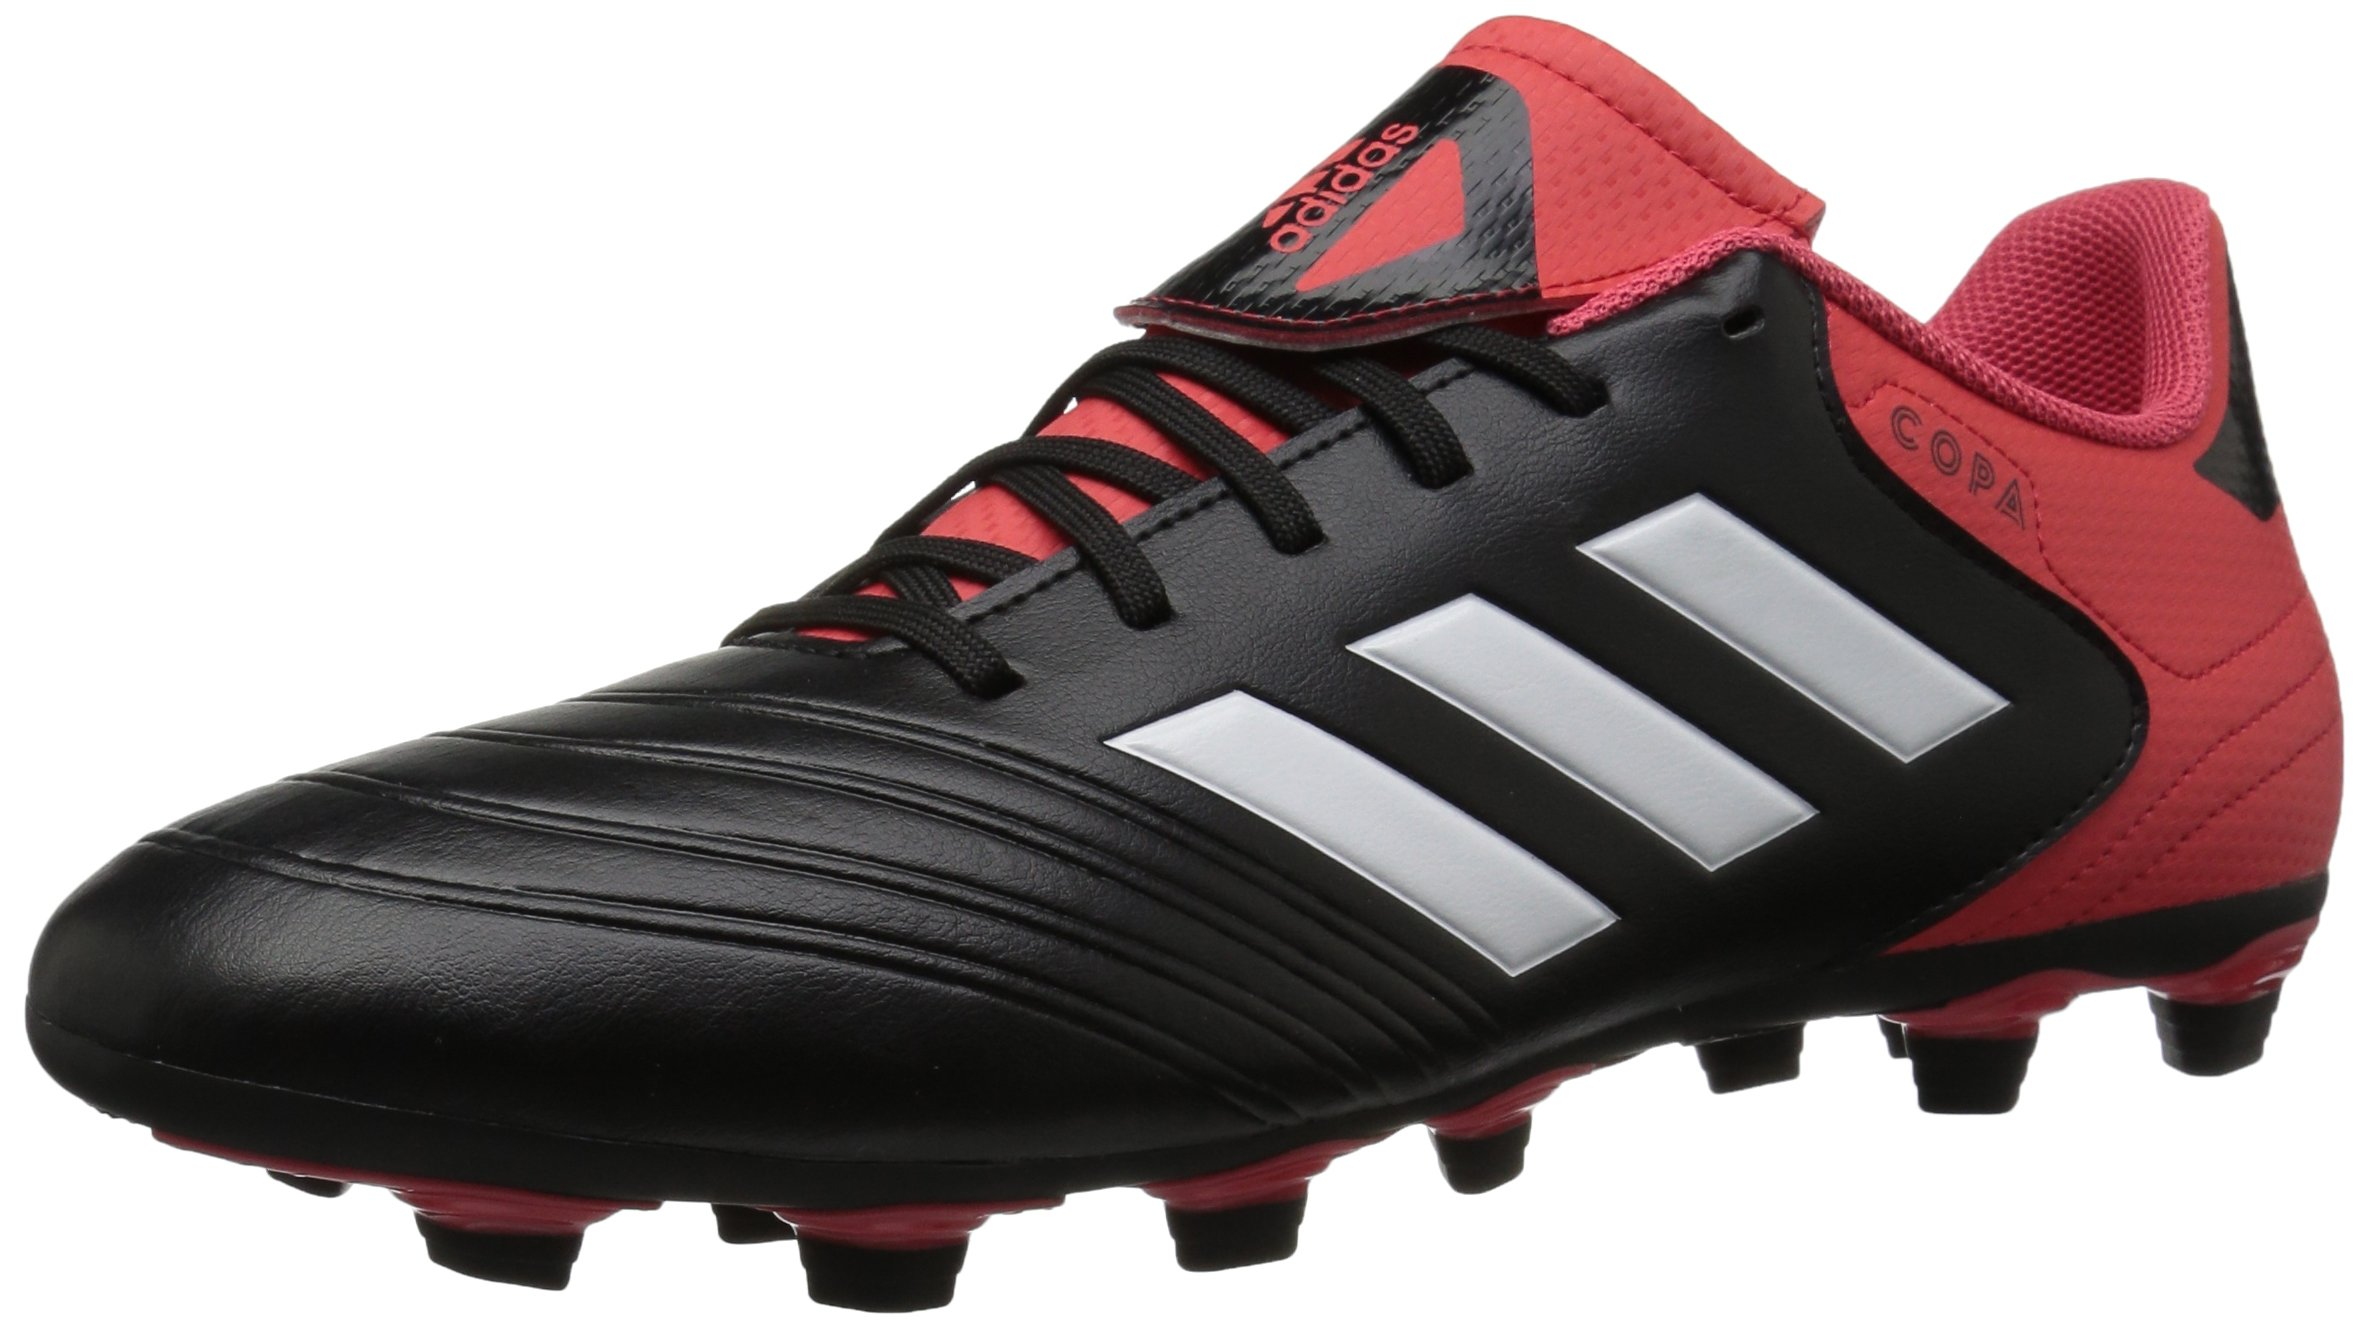 adidas Performance Men's Copa 18.4 FxG Soccer Shoe, Core Black/White/Real Coral, 9.5 M US by adidas